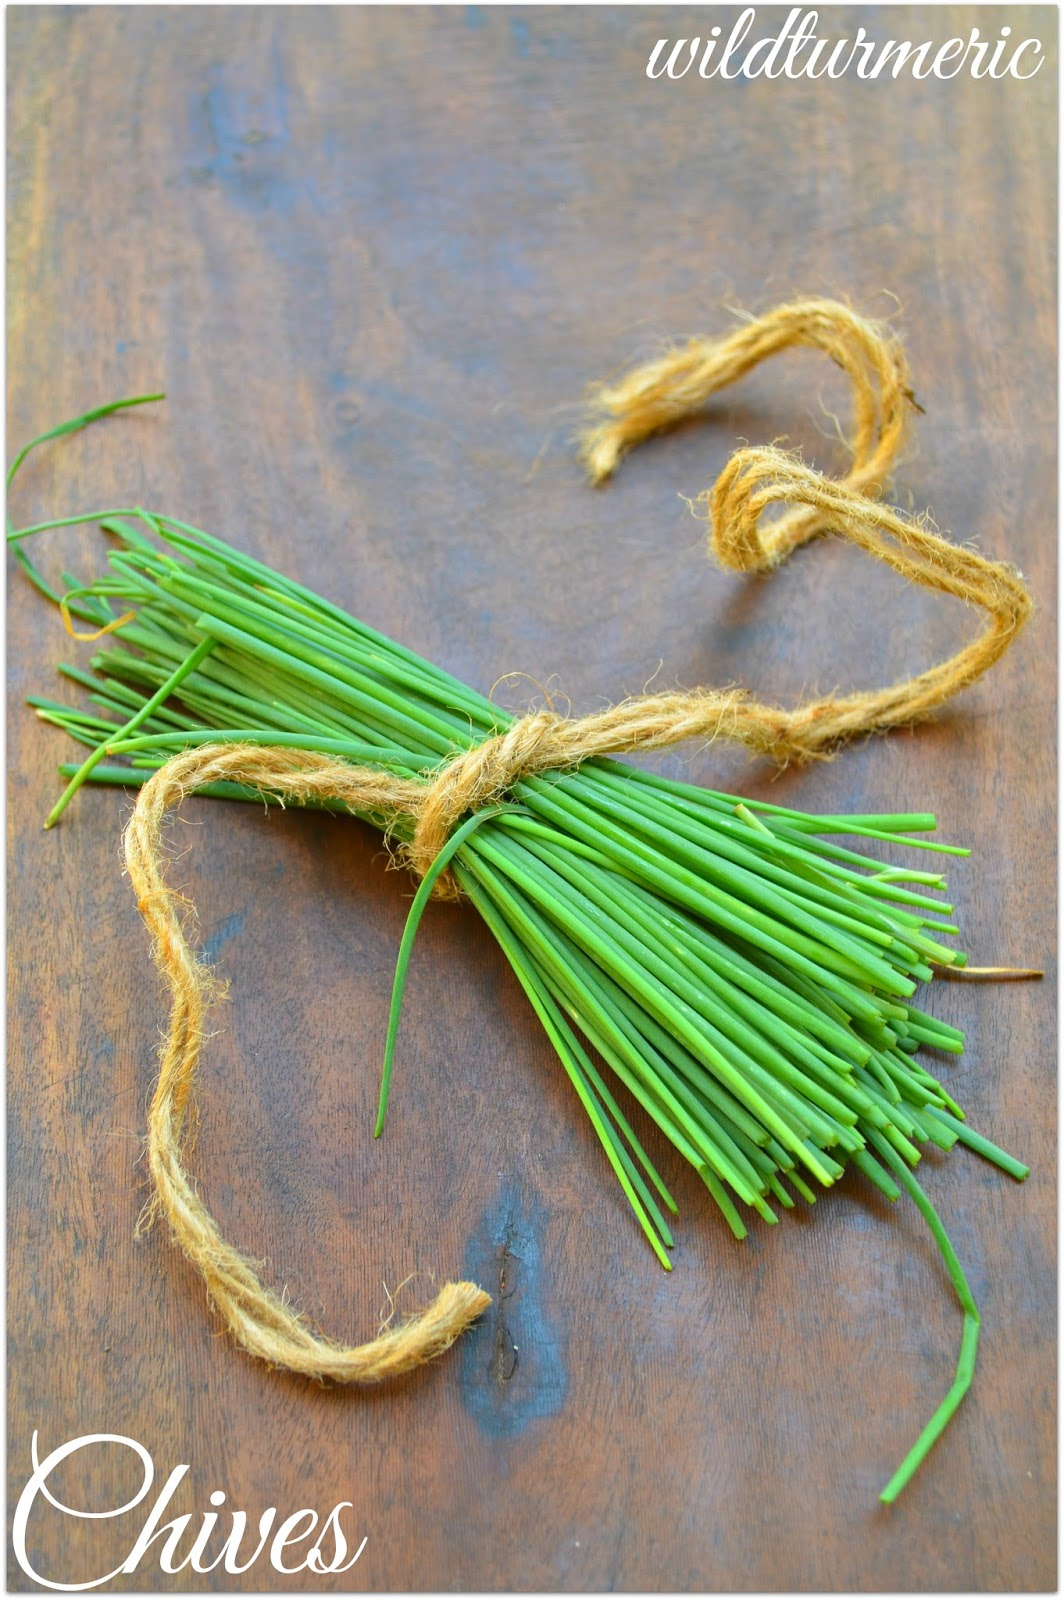 8 Top Medicinal Uses Of Chives For Skin, Hair & Health